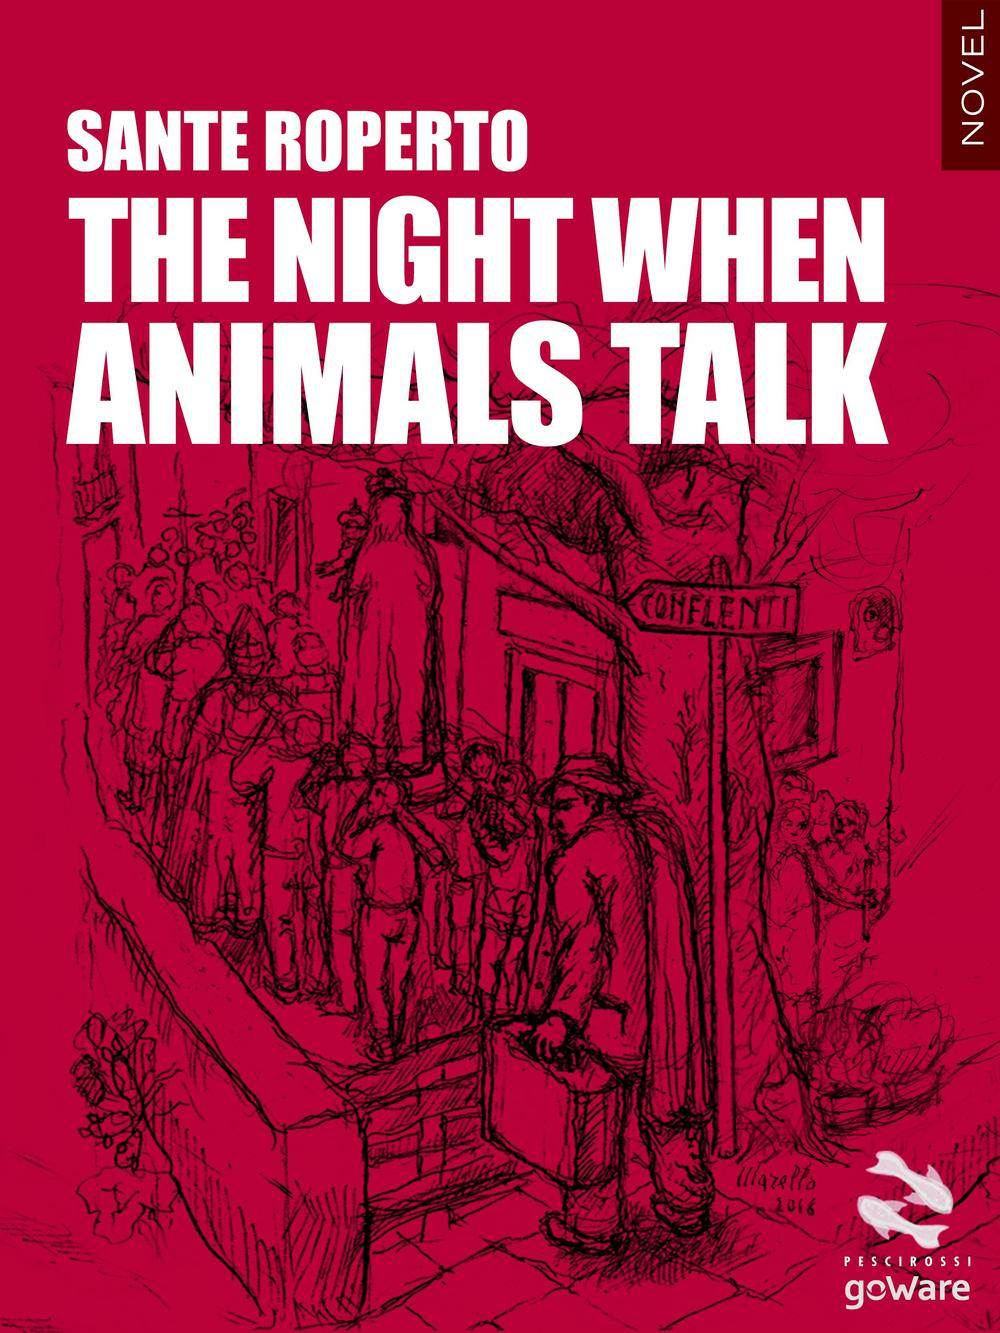 The night when animals talk